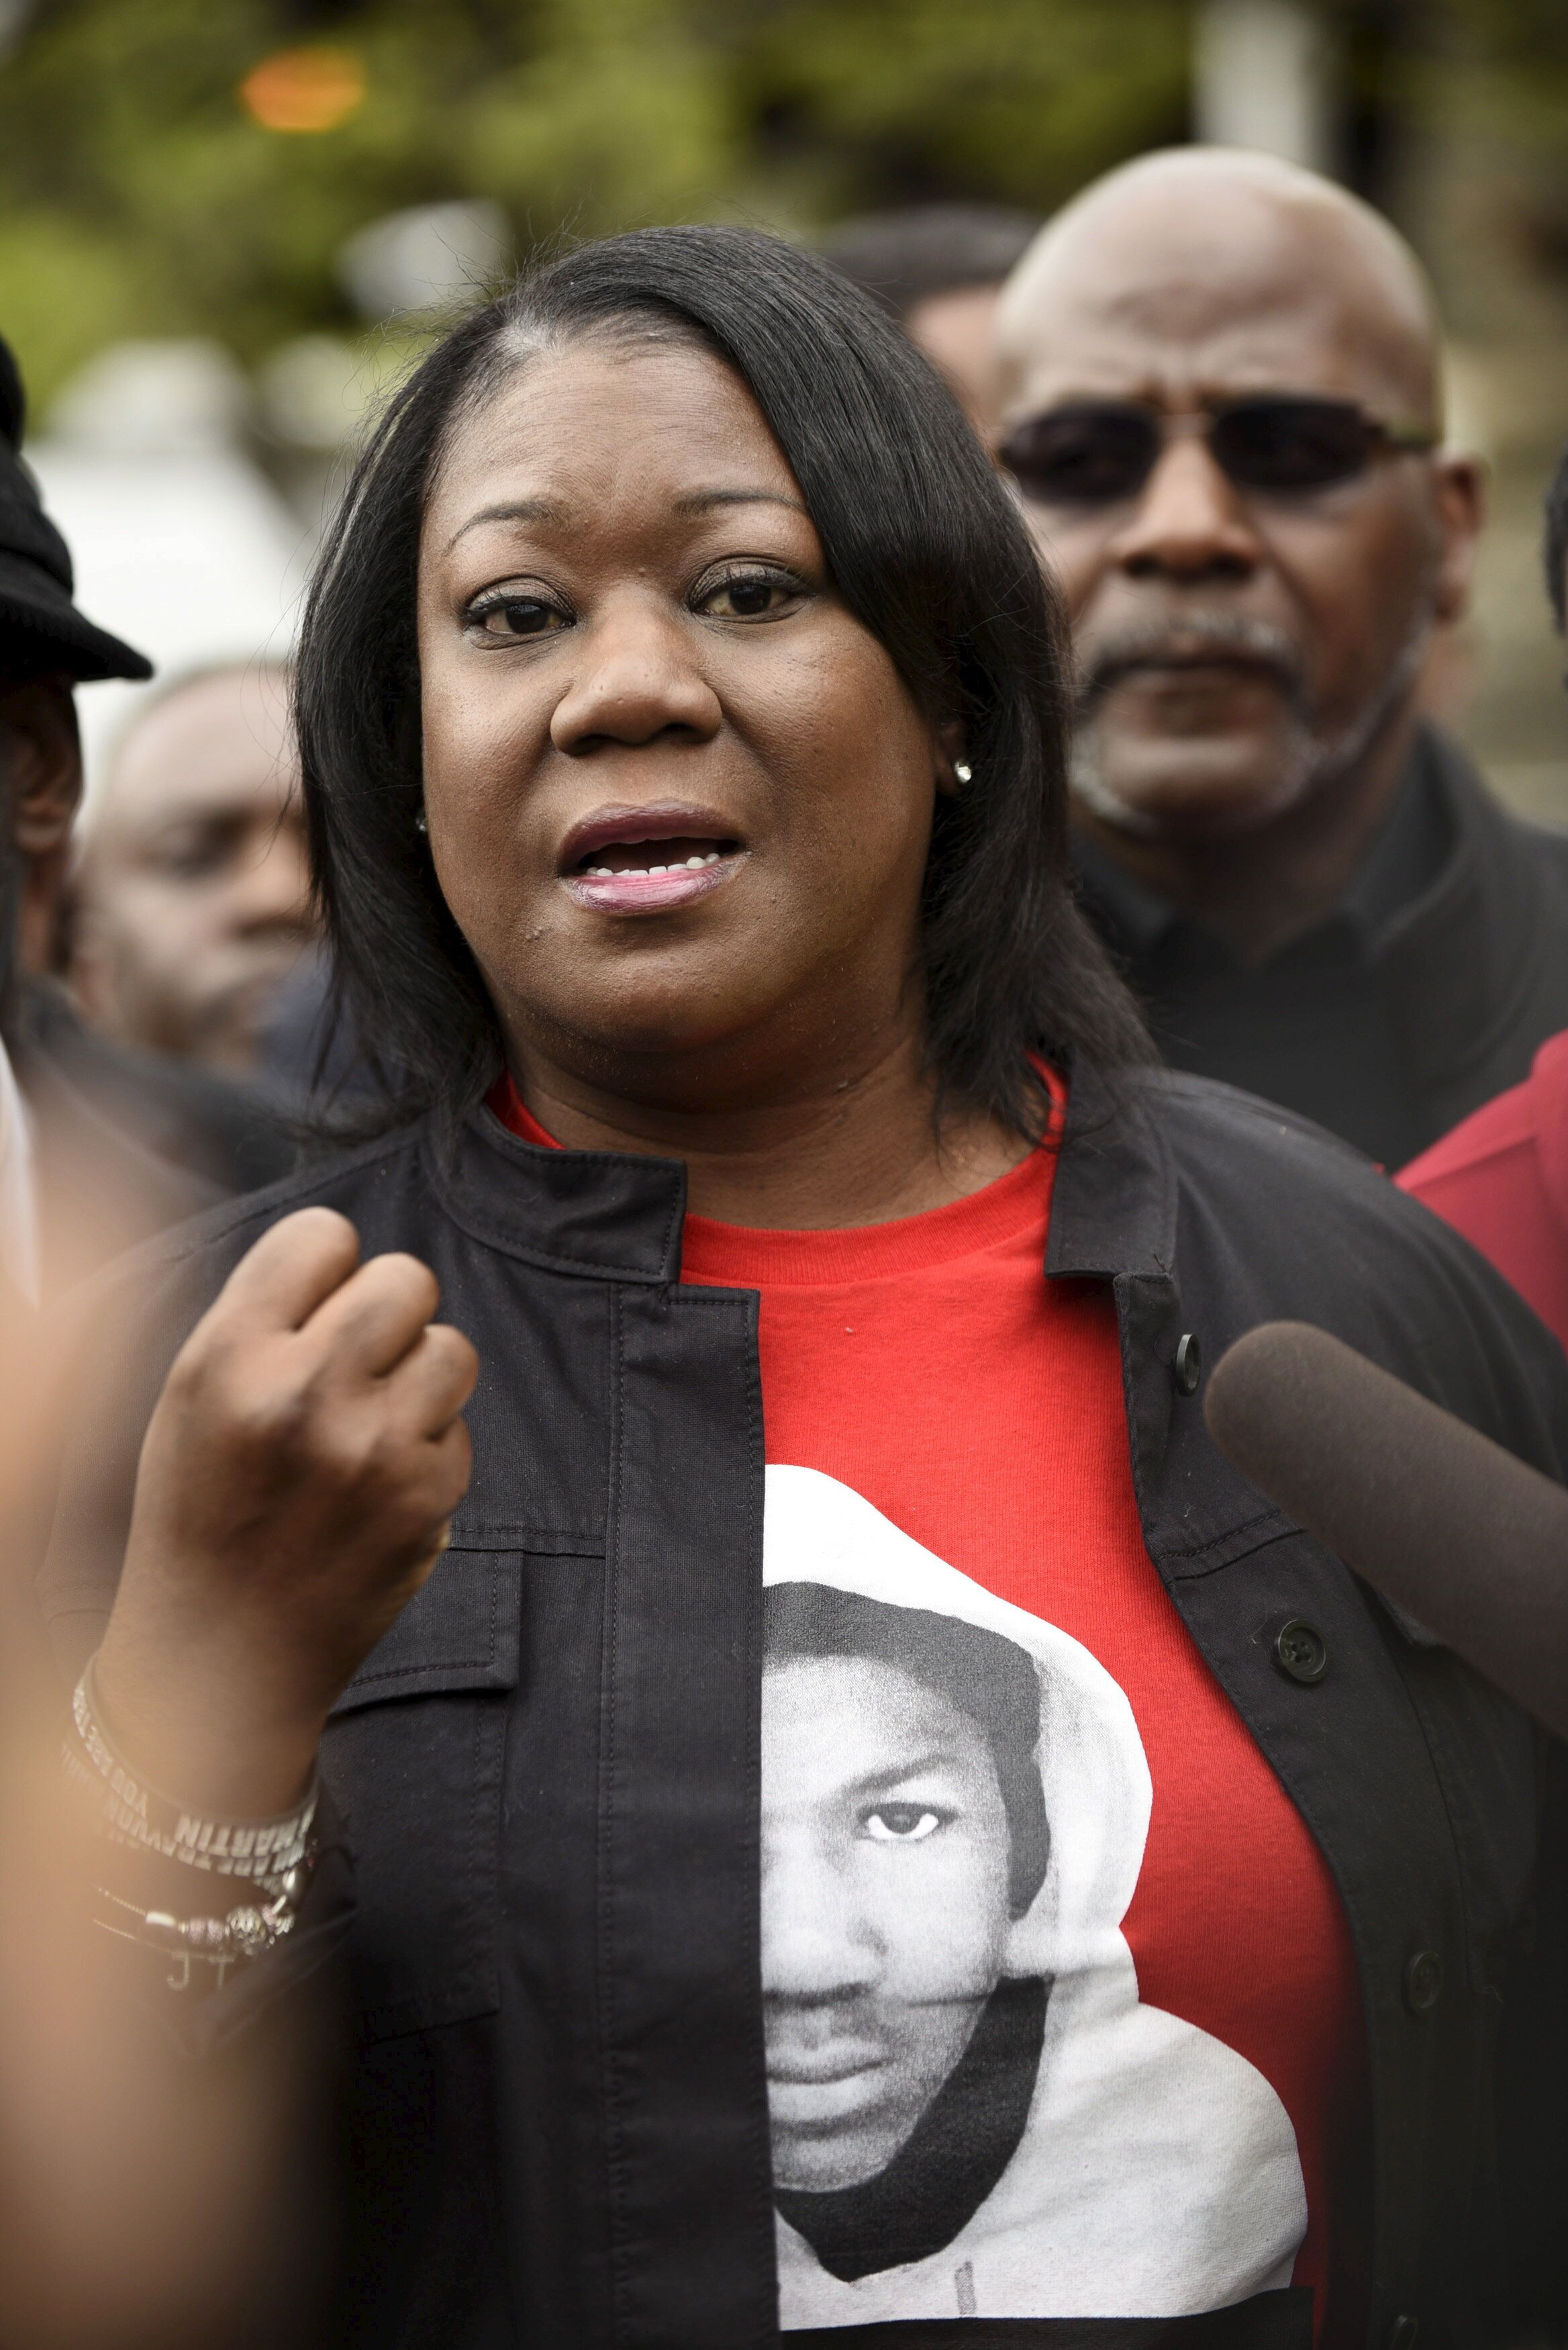 Trayvon Martin's mother Sybrina Fulton speaks to the media in front of the Baltimore Central Booking and Intake Center in Baltimore, May 1, 2015. REUTERS/Sait Serkan Gurbuz